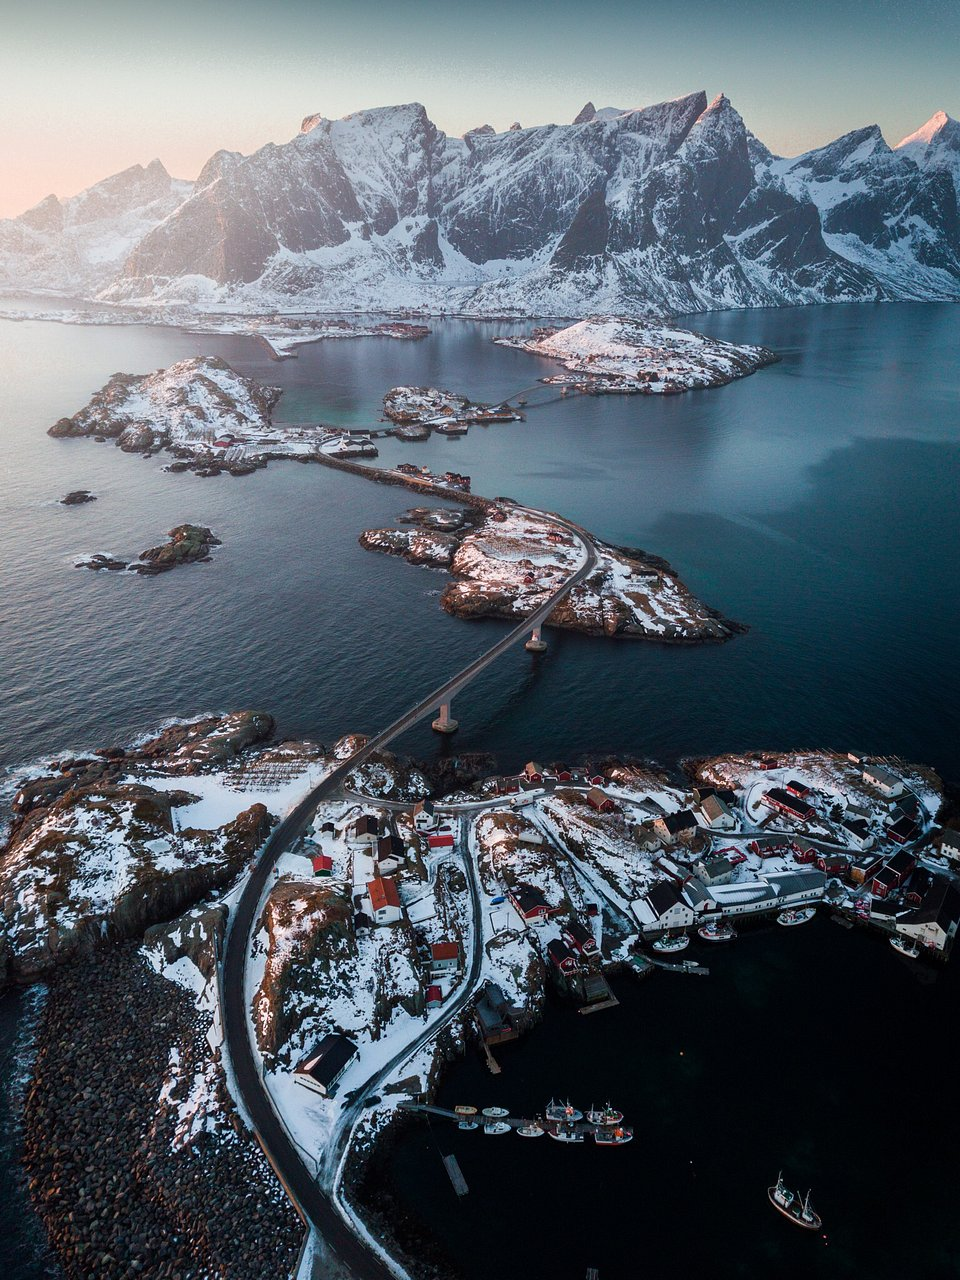 This incredible show captures the extent of the E10 highway that snakes throughout the Lofoten archipelago. (Lee Mumford/Agora)